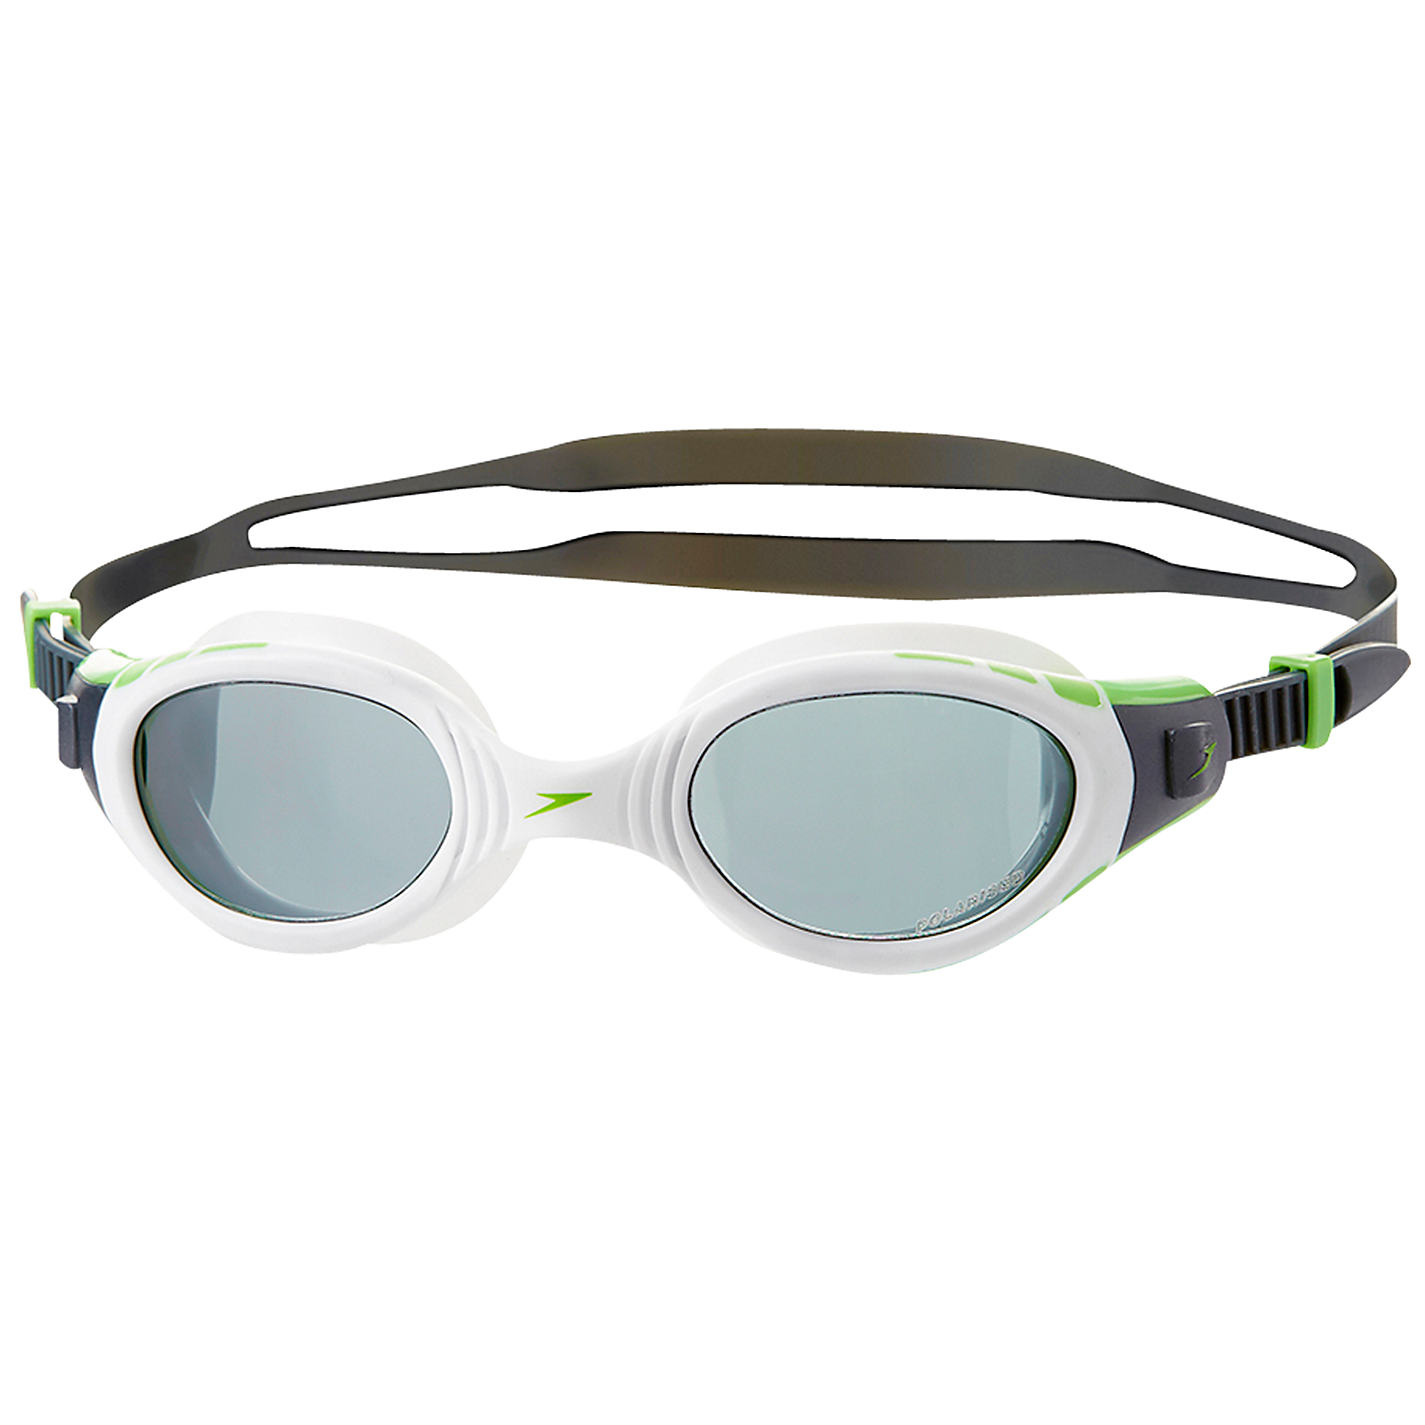 Swimming Goggle Buying Guide